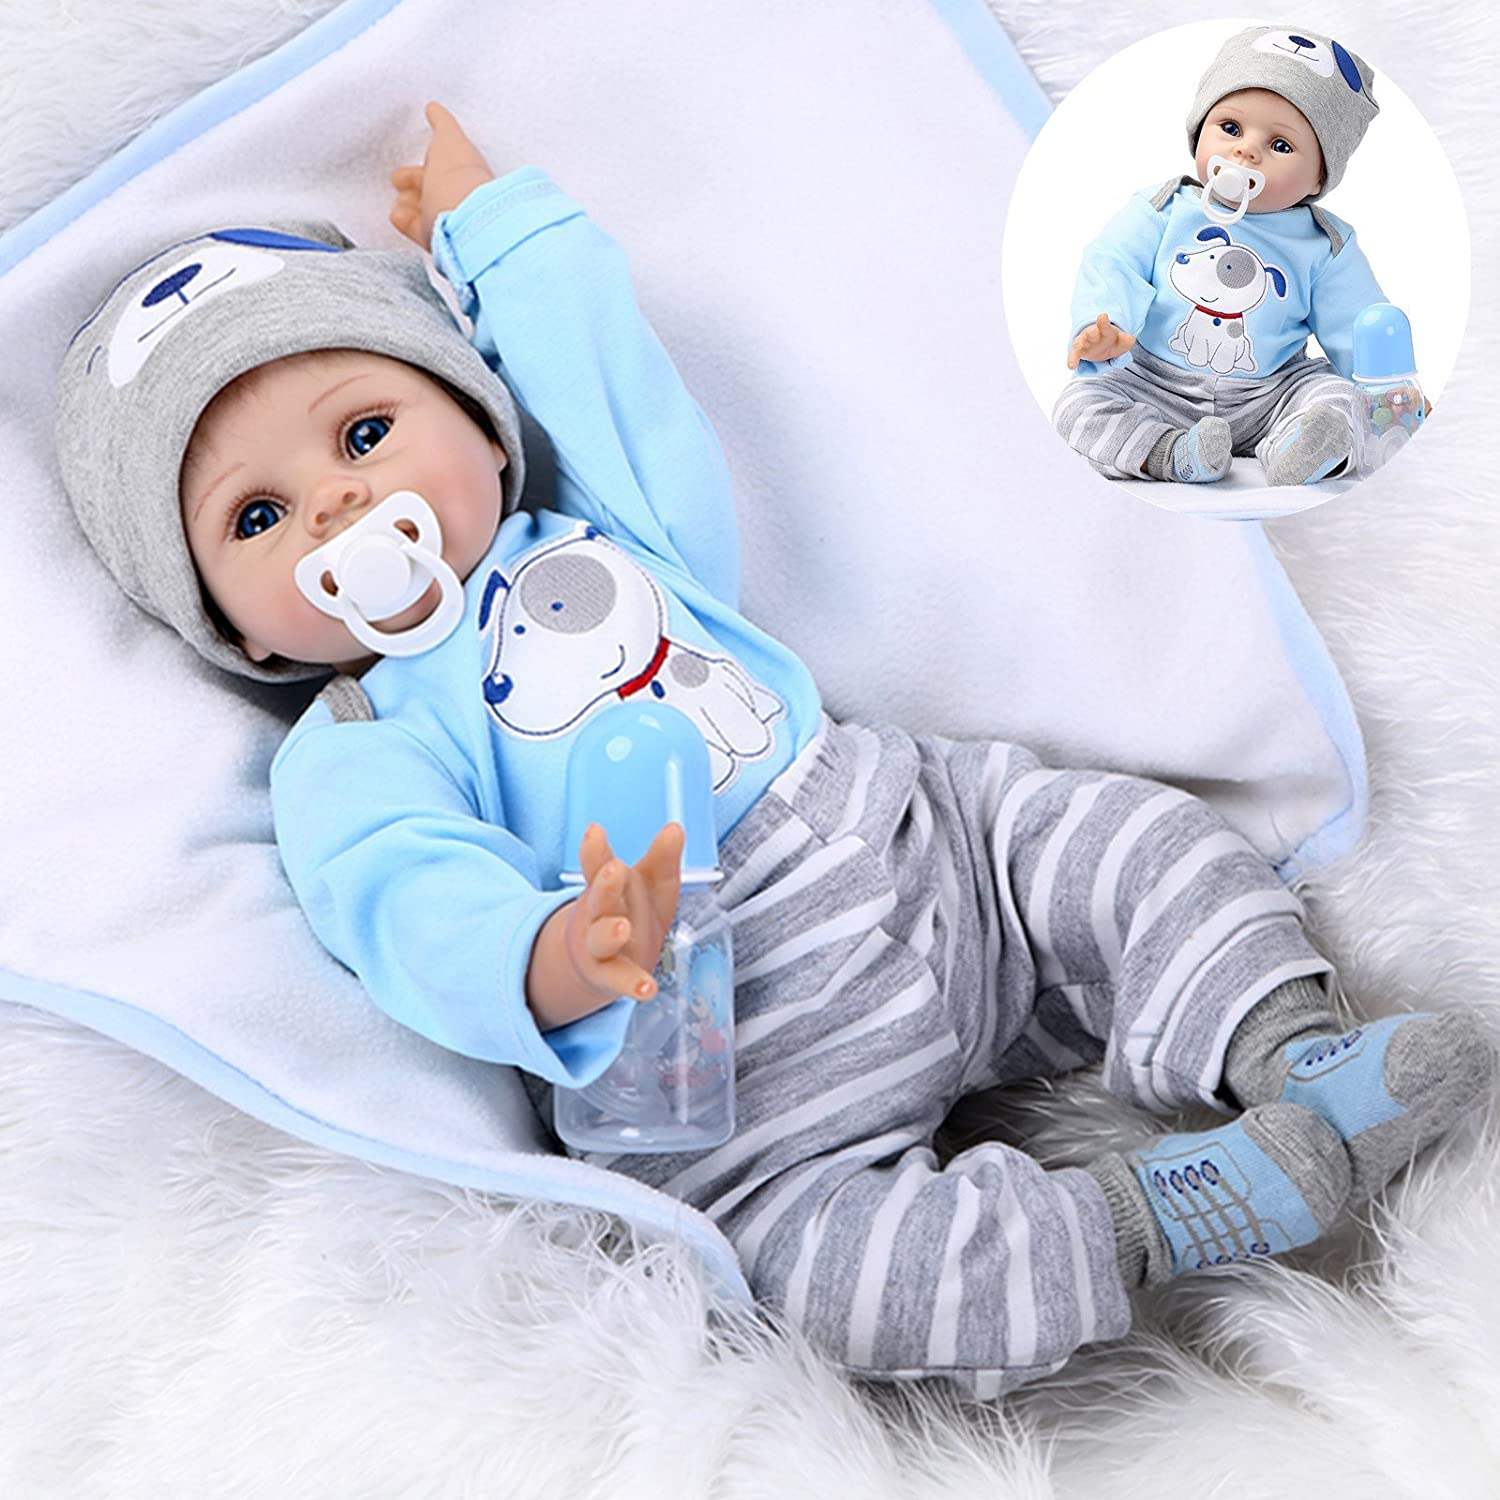 SG/_B07G3849MF/_US Medylove Realistic Reborn Baby Dolls Boy Lifelike Silicone Vinyl 22 Inches 55 cm Weighted Body Wearing Toy Blue Dog Cute Doll Eyes Open Gift Set for Ages 3